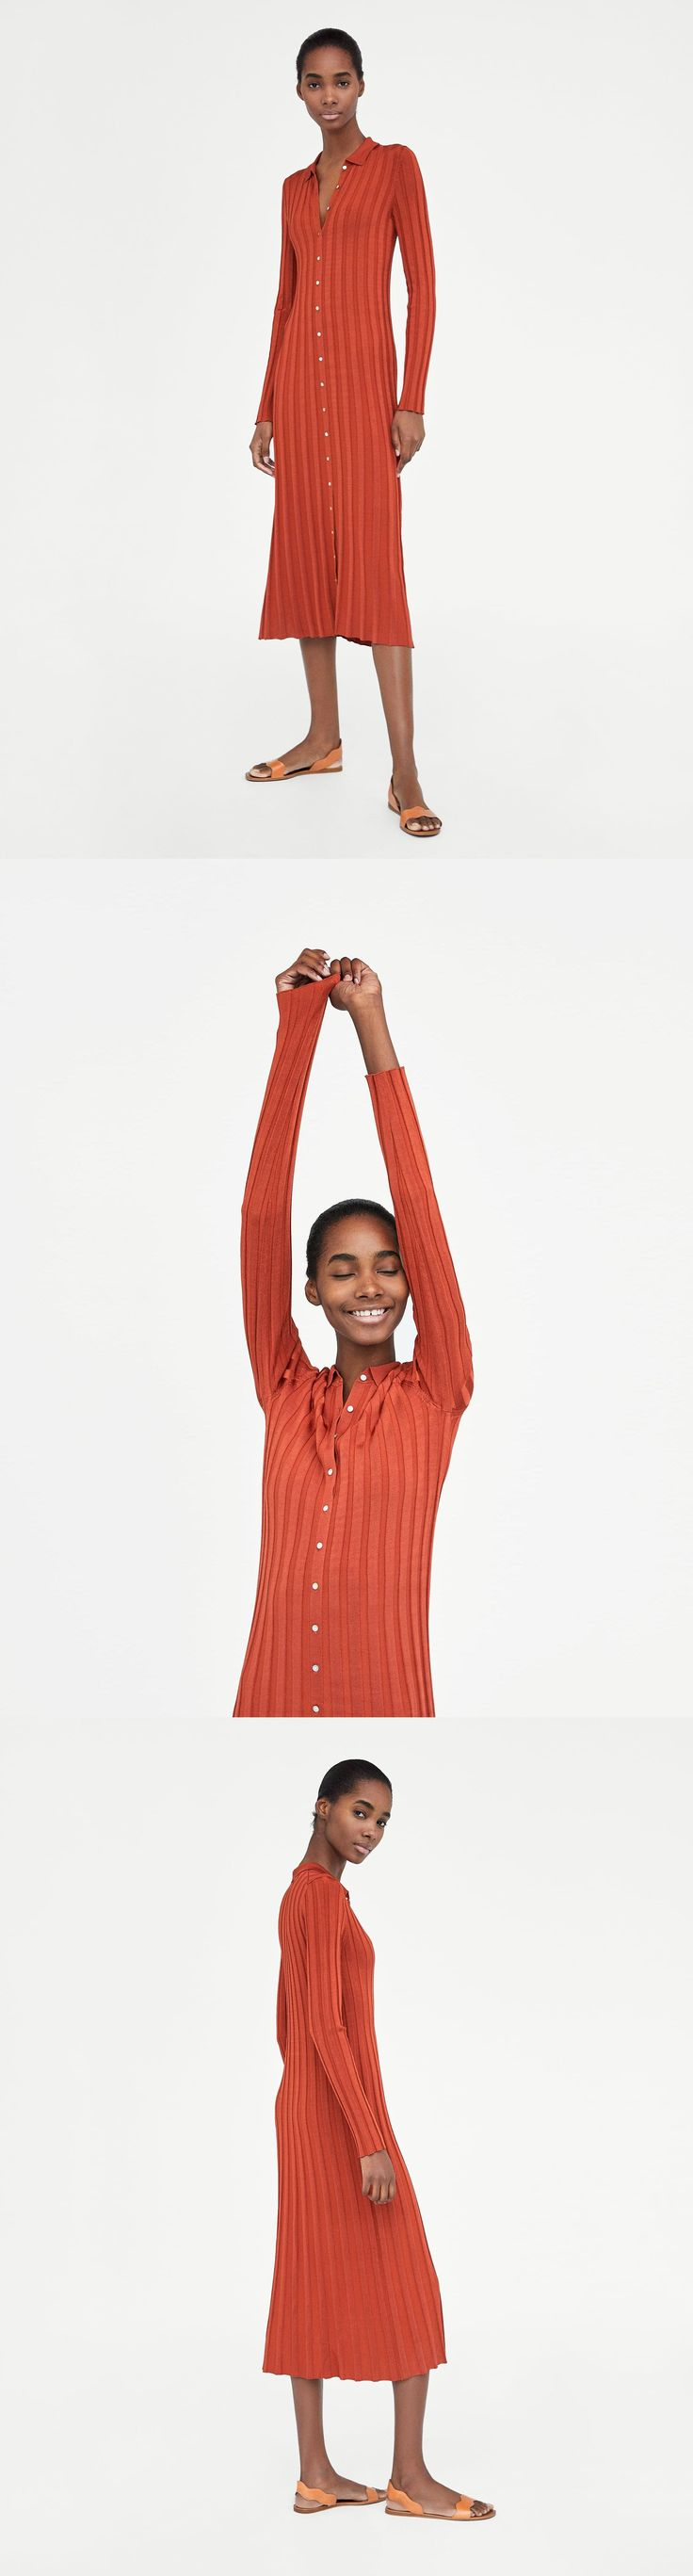 Ribbed Dress With Polo Collar // 69.90 USD // Zara // Long, ribbed knit dress made from flowing fabric, featuring a polo collar, long sleeves and a button-up front. HEIGHT OF MODEL: 179 CM / 5′ 10″